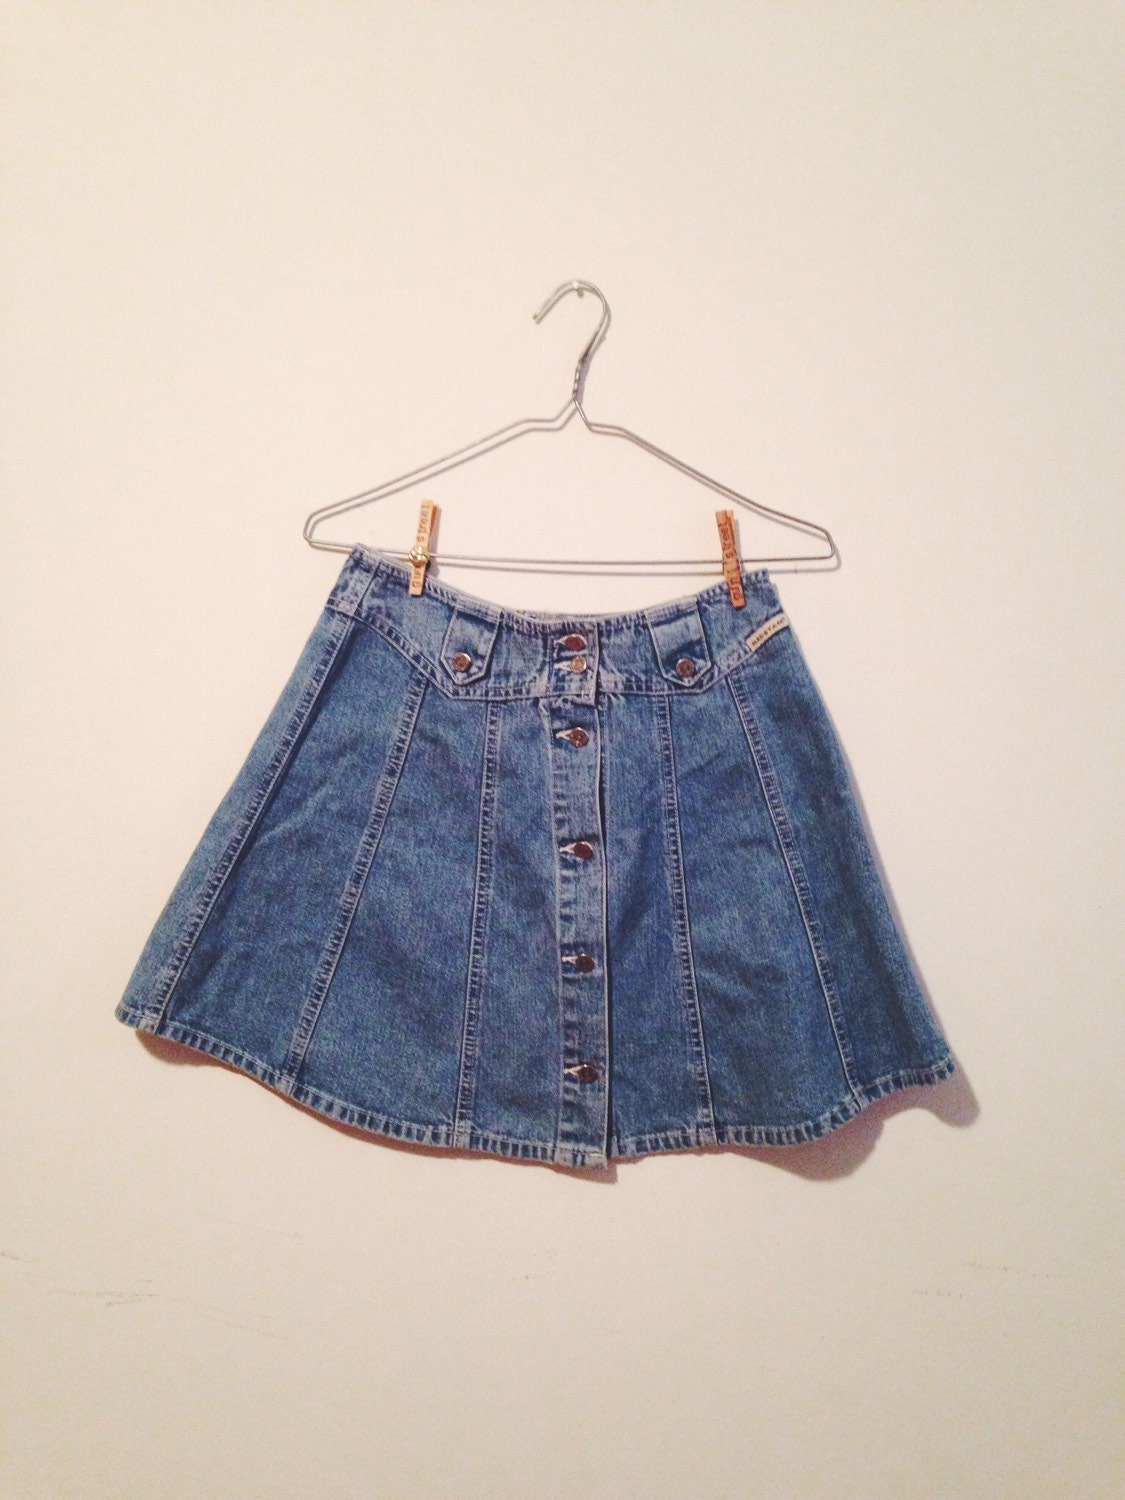 90s denim button up skirt flared 70s style small by gunstreet